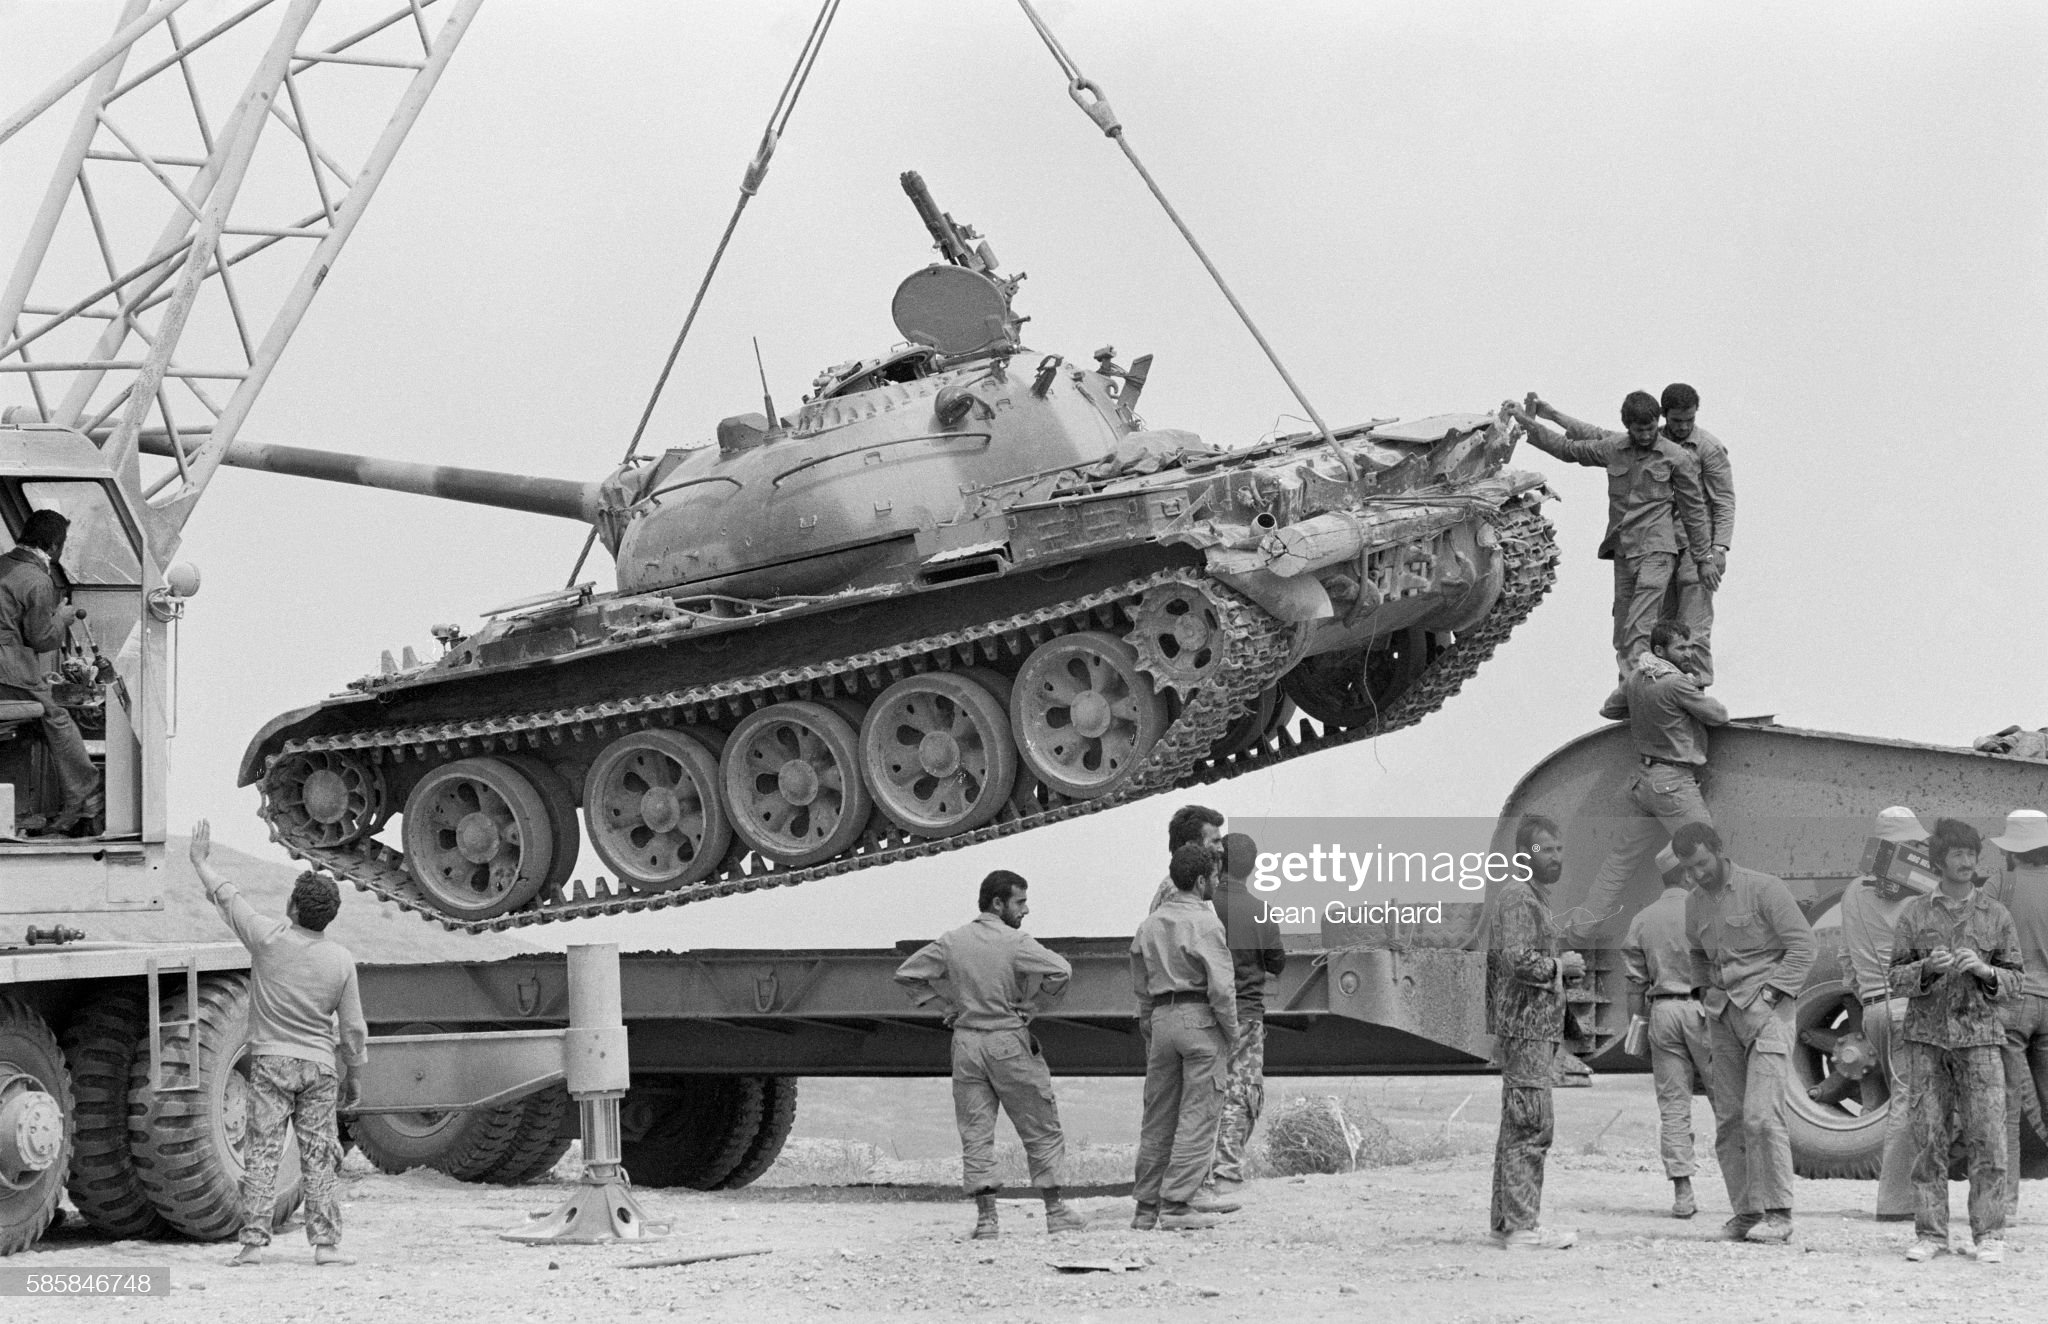 https://media.gettyimages.com/photos/tank-captured-from-iraqi-forces-during-the-1980-iraniraq-war-is-by-picture-id585846748?s=2048x2048